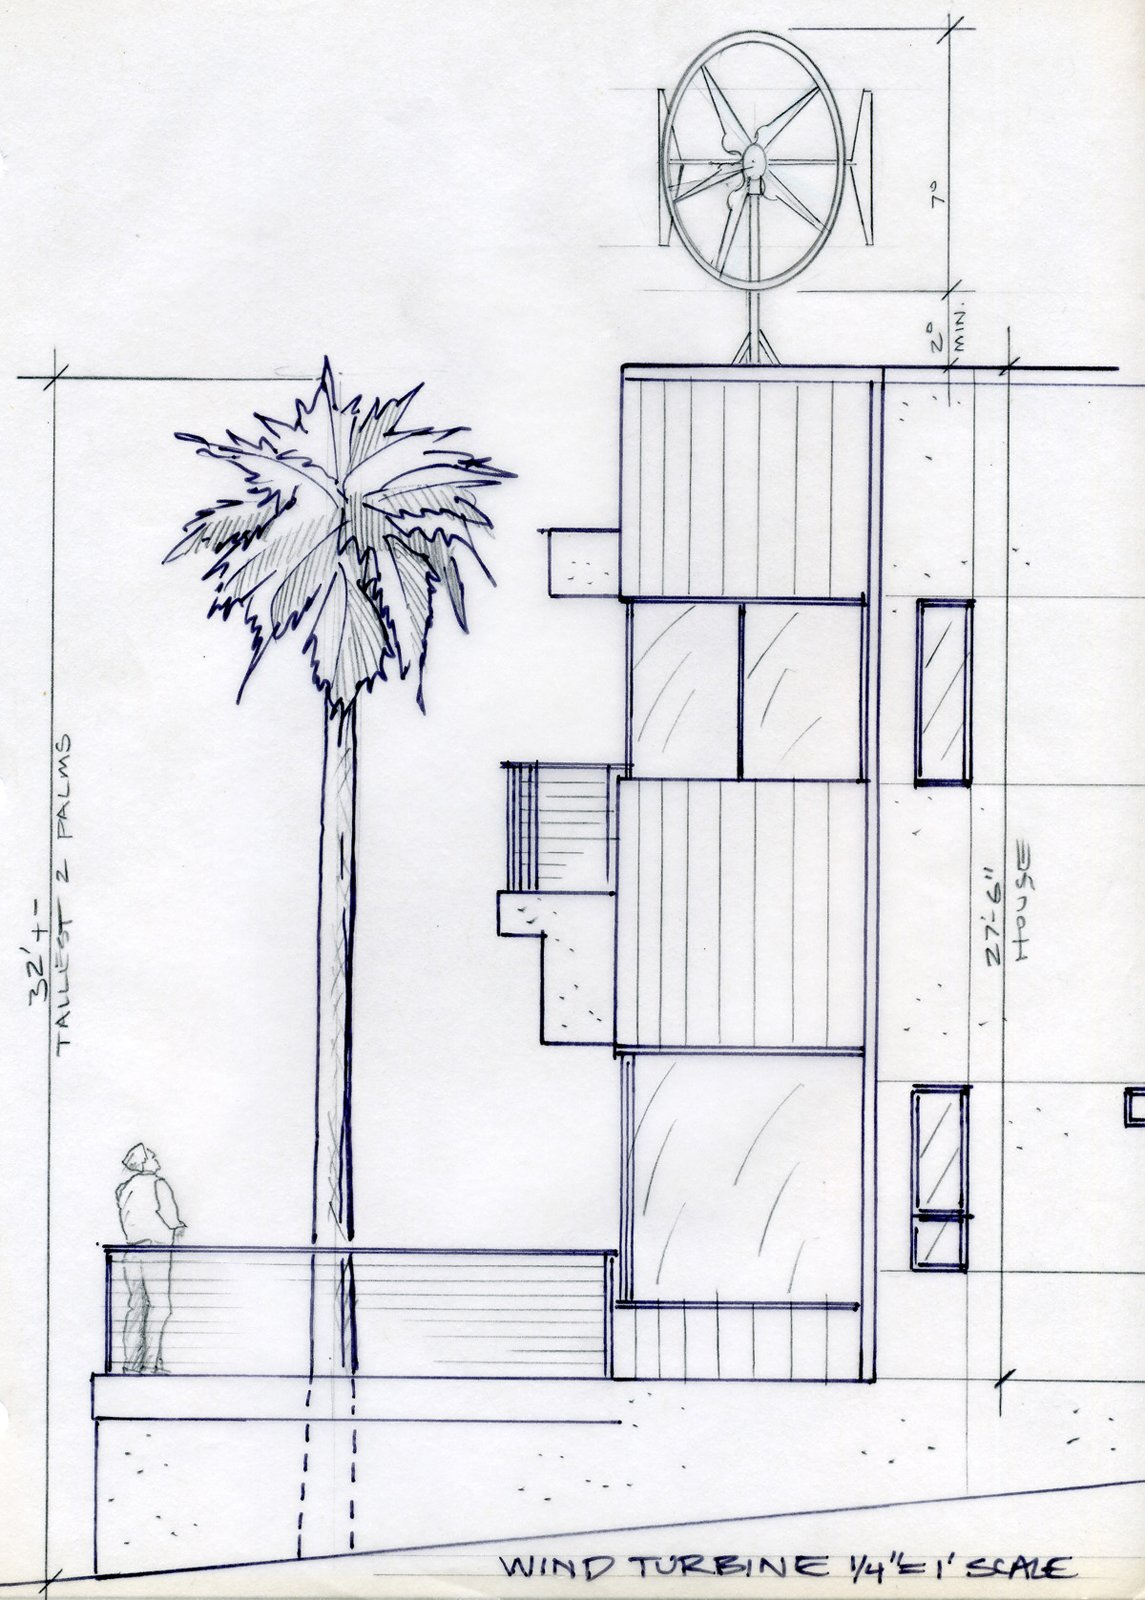 An early study of a wind turbine for the roof, an idea that was eventually scrapped by the team due to permit and acoustics issues, as well as concern for native wildlife.   Photo 1 of 18 in Actor Bryan Cranston's Green Beach House Renovation from Plans